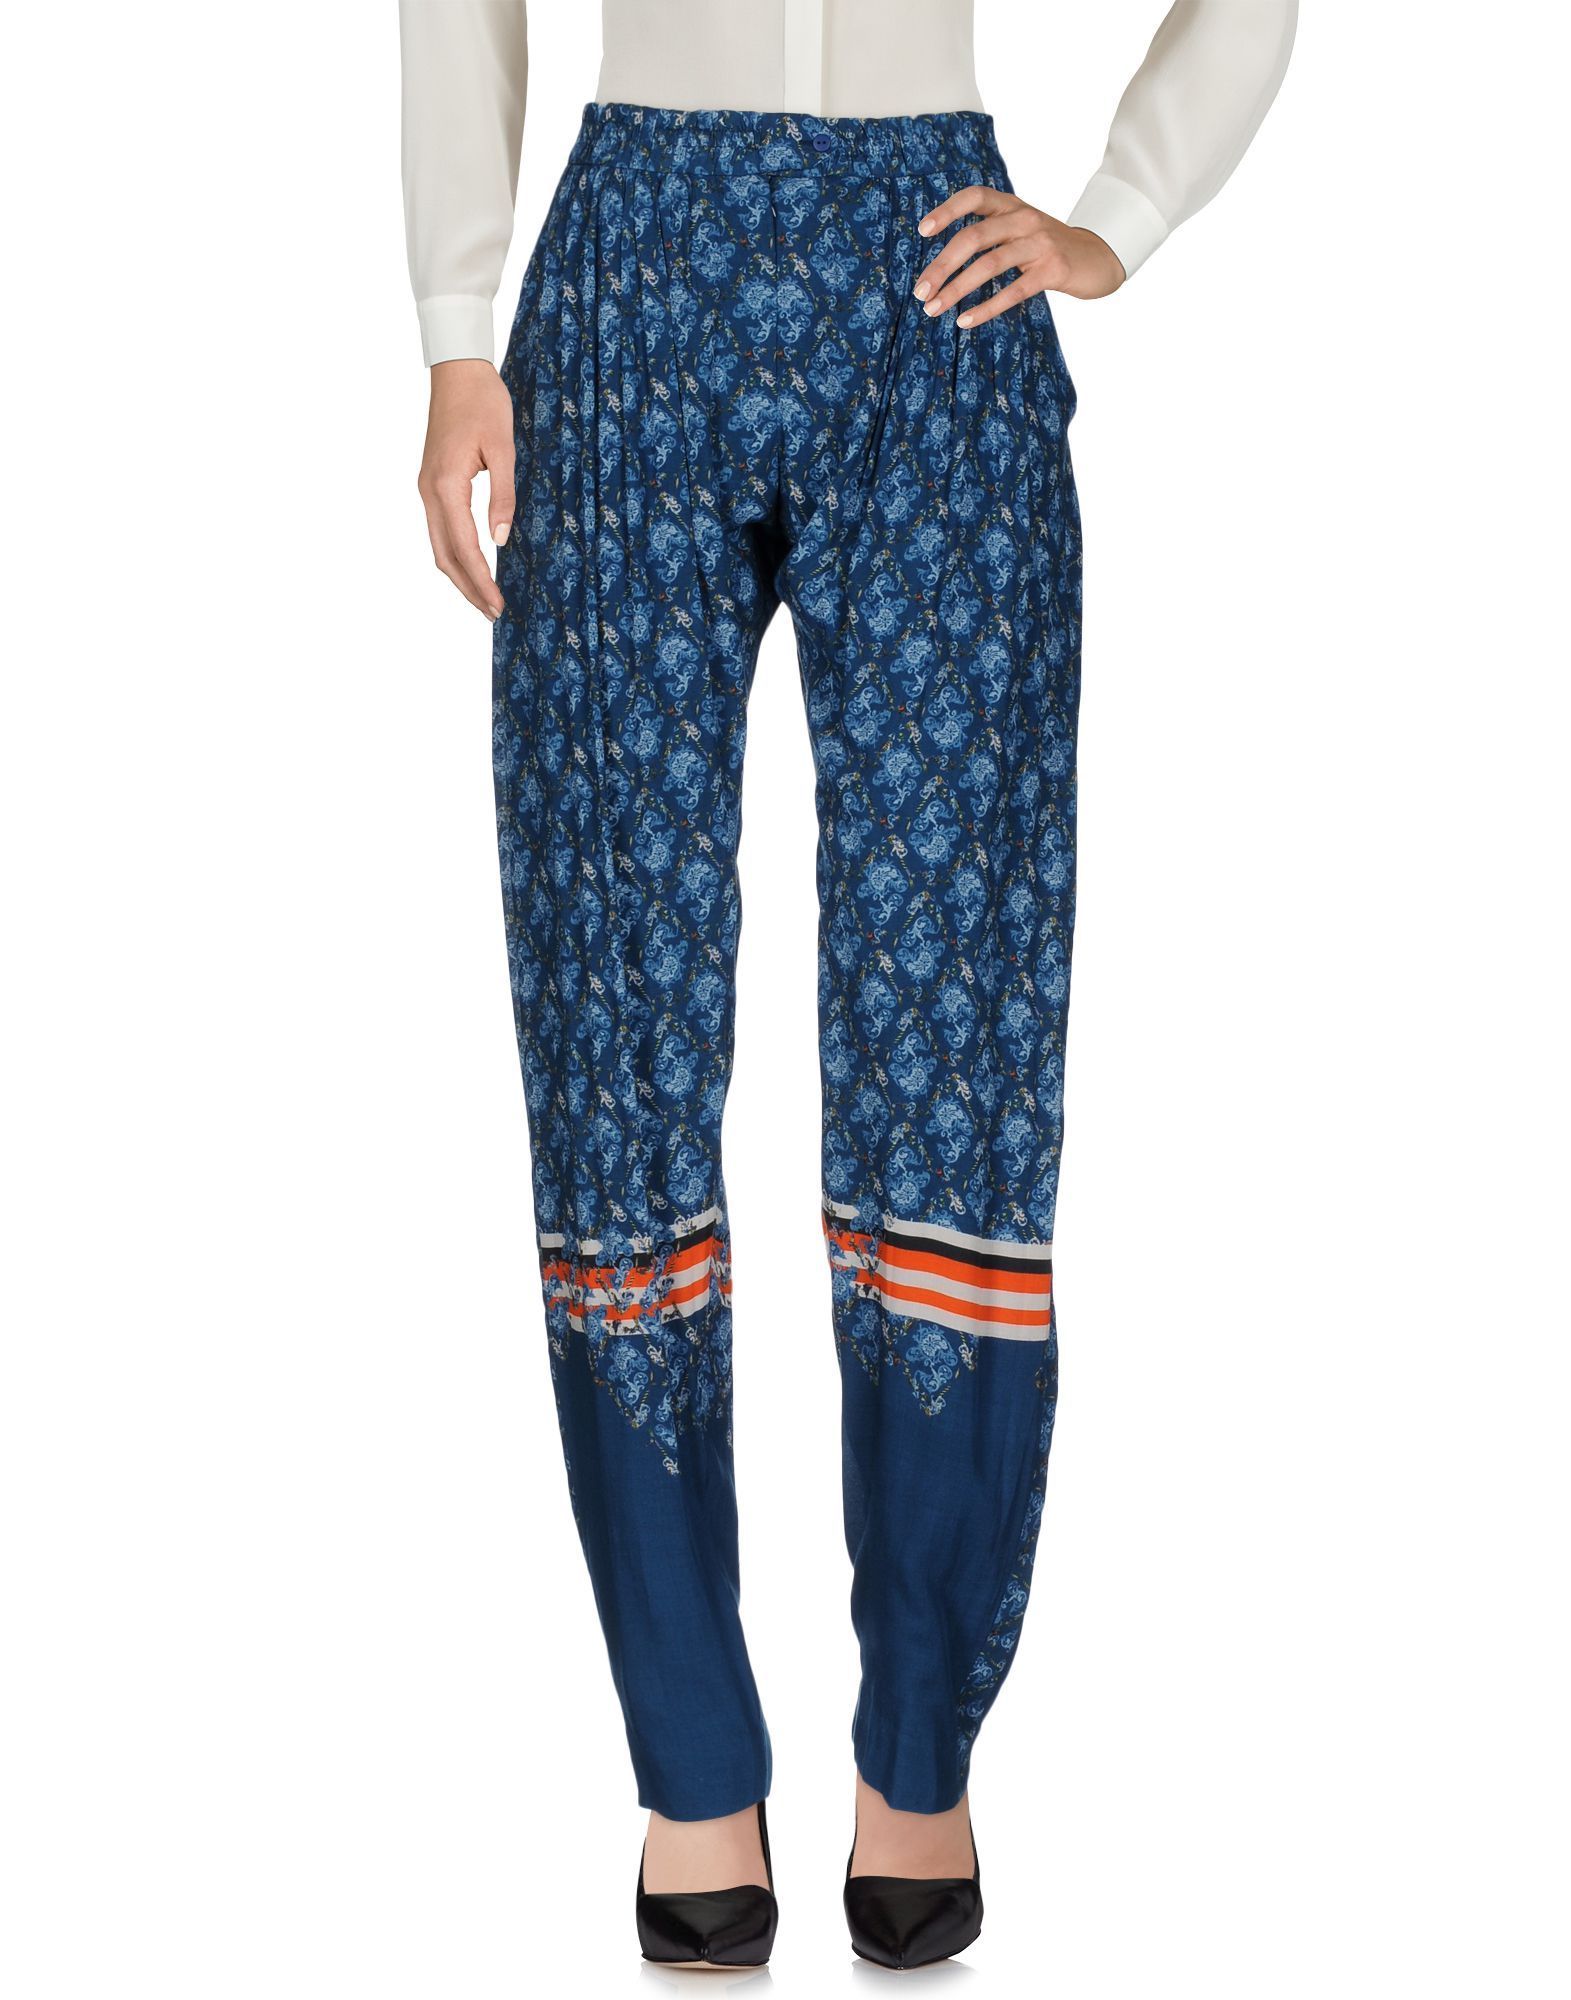 Pantalone Preen Line donna donna - 13066794NV  in stadion promotions